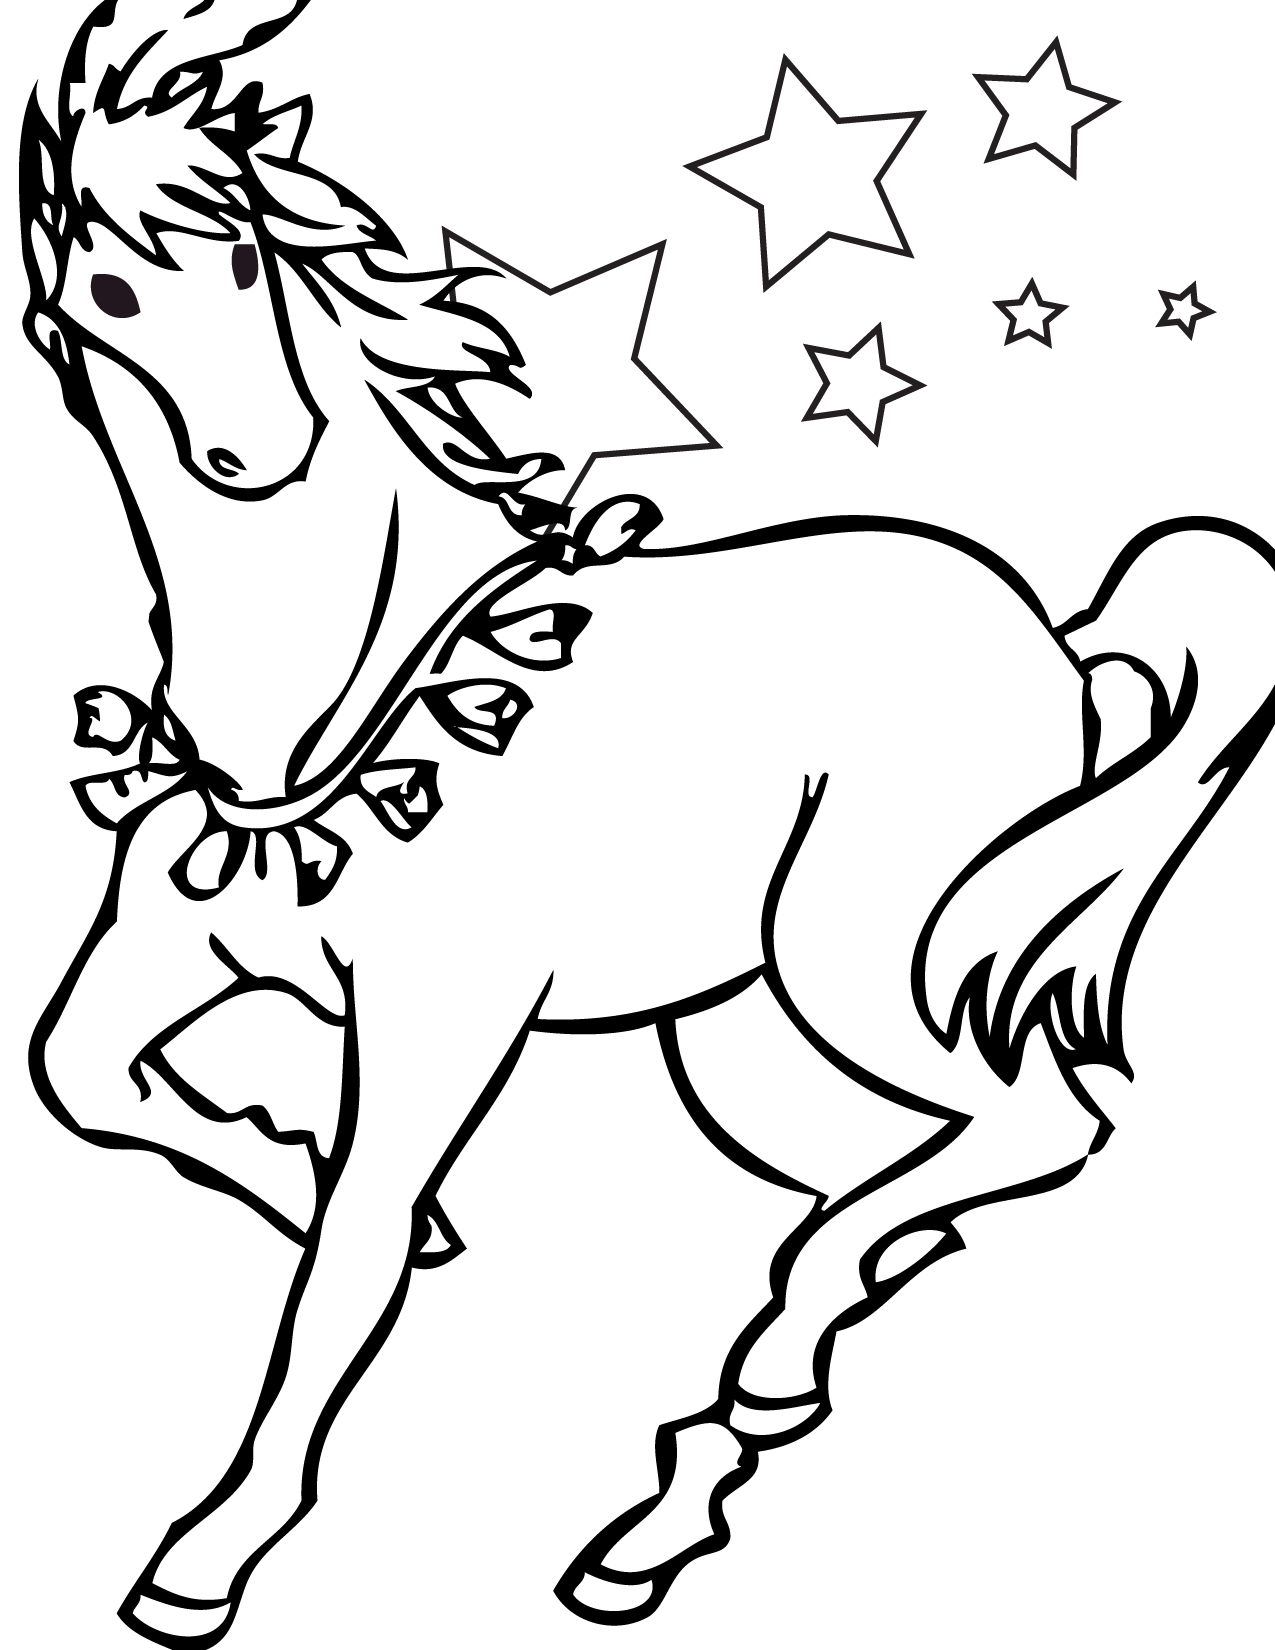 coloring pages horse - photo#5